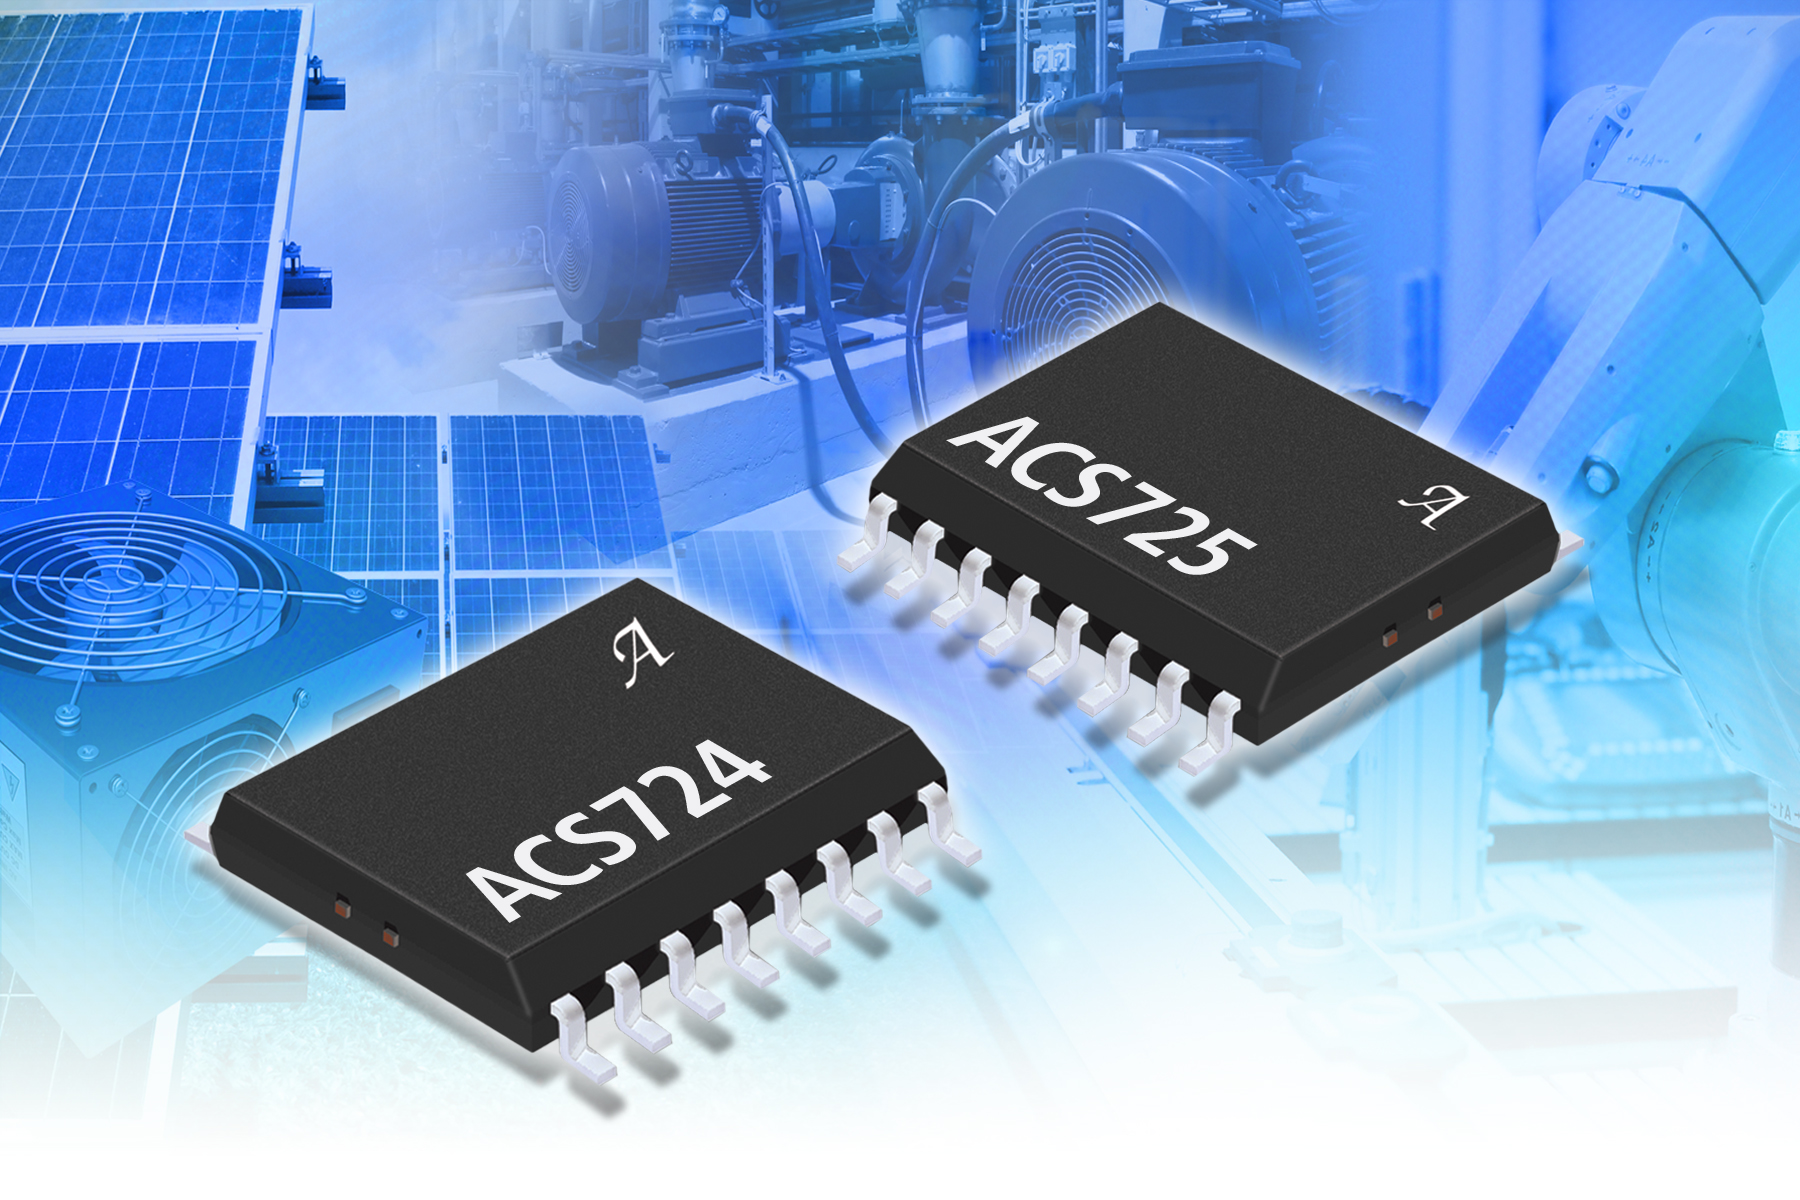 High Accuracy Differential Current Sensors Add Isolation Sensing For Voltage Application Schematic Two New Ac Or Dc In Industrial Commercial And Communication Systems That Require Very